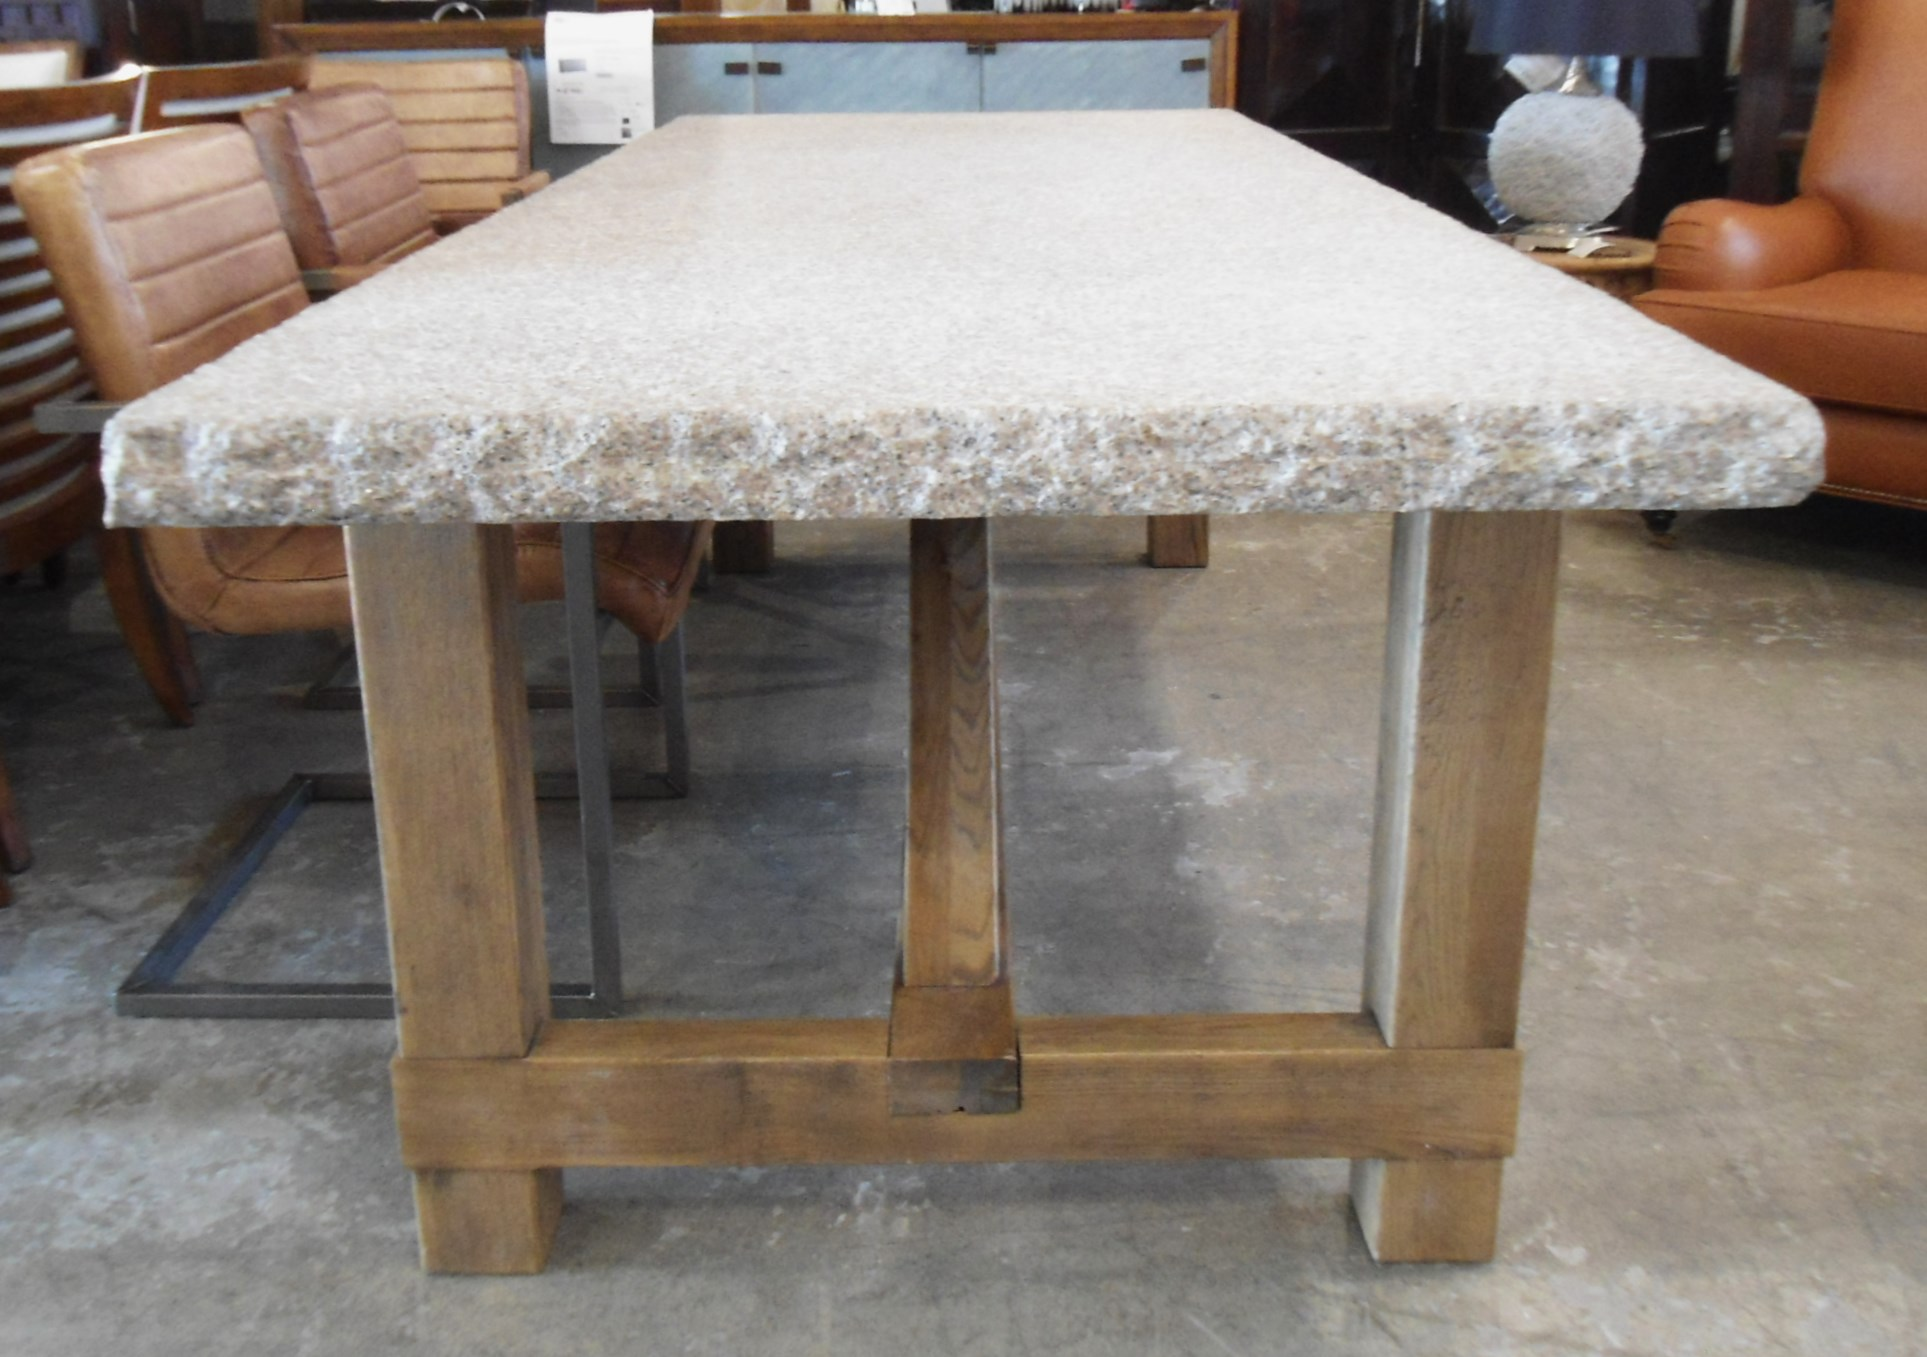 Granite Top Dining Table with Raw Wood Base Chairish : 4d4769fb e91f 4c71 8ada 6568d2d29374aspectfitampwidth640ampheight640 from www.chairish.com size 640 x 640 jpeg 47kB